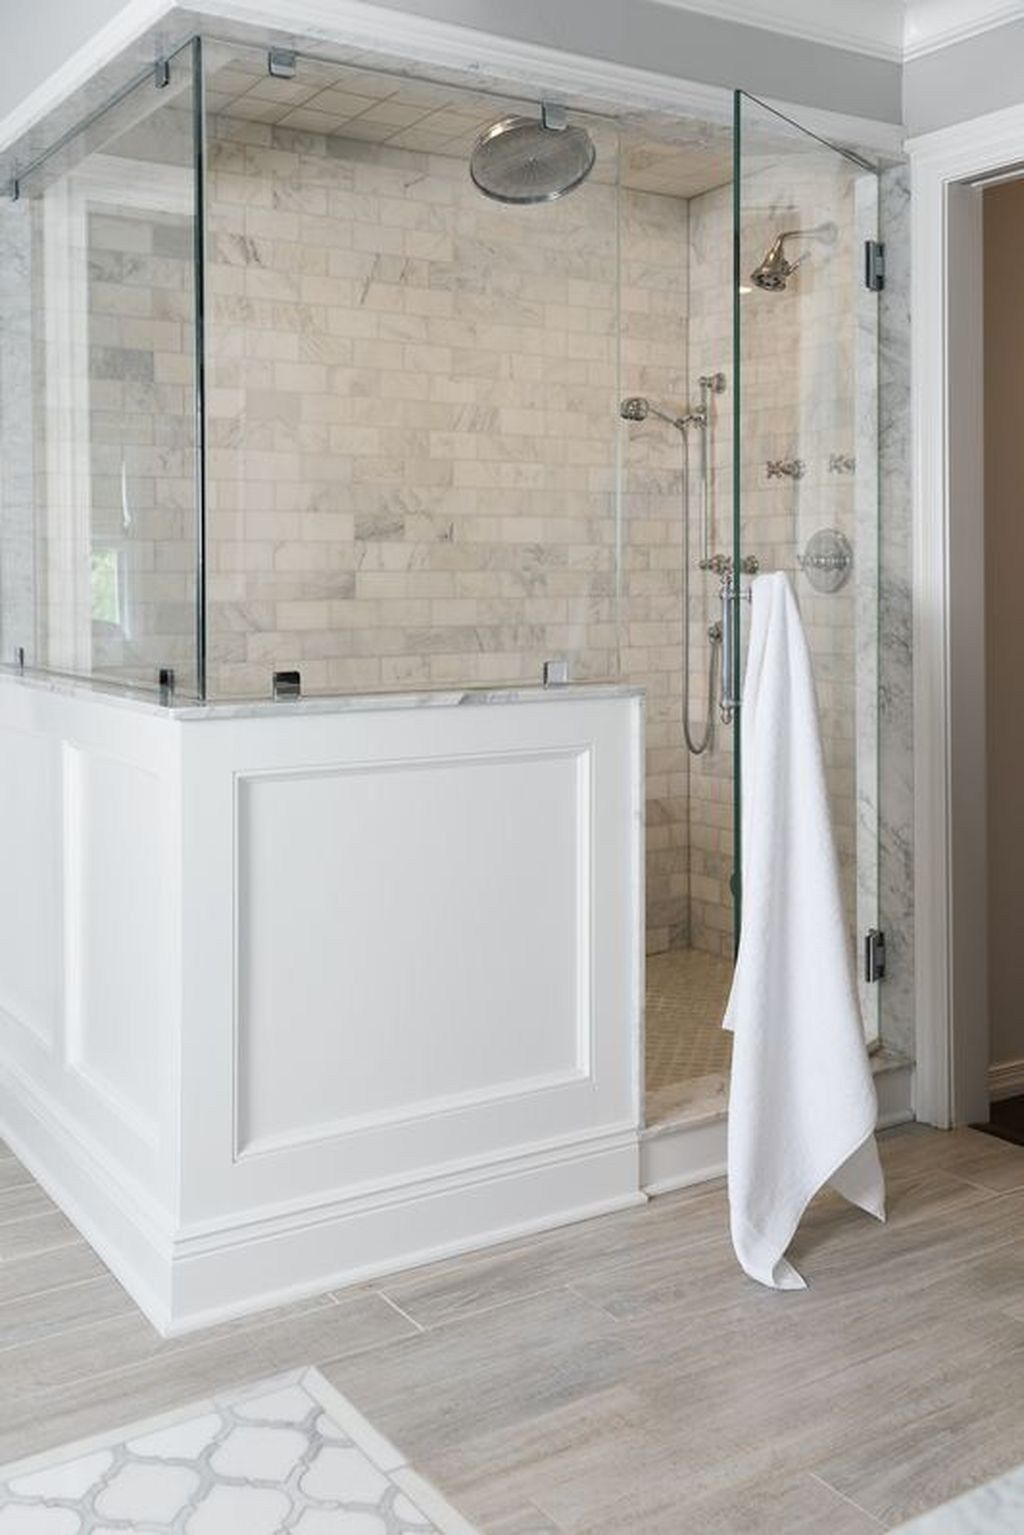 Adorable Master Bathroom Shower Remodel Ideas 66 | Bathroom ...